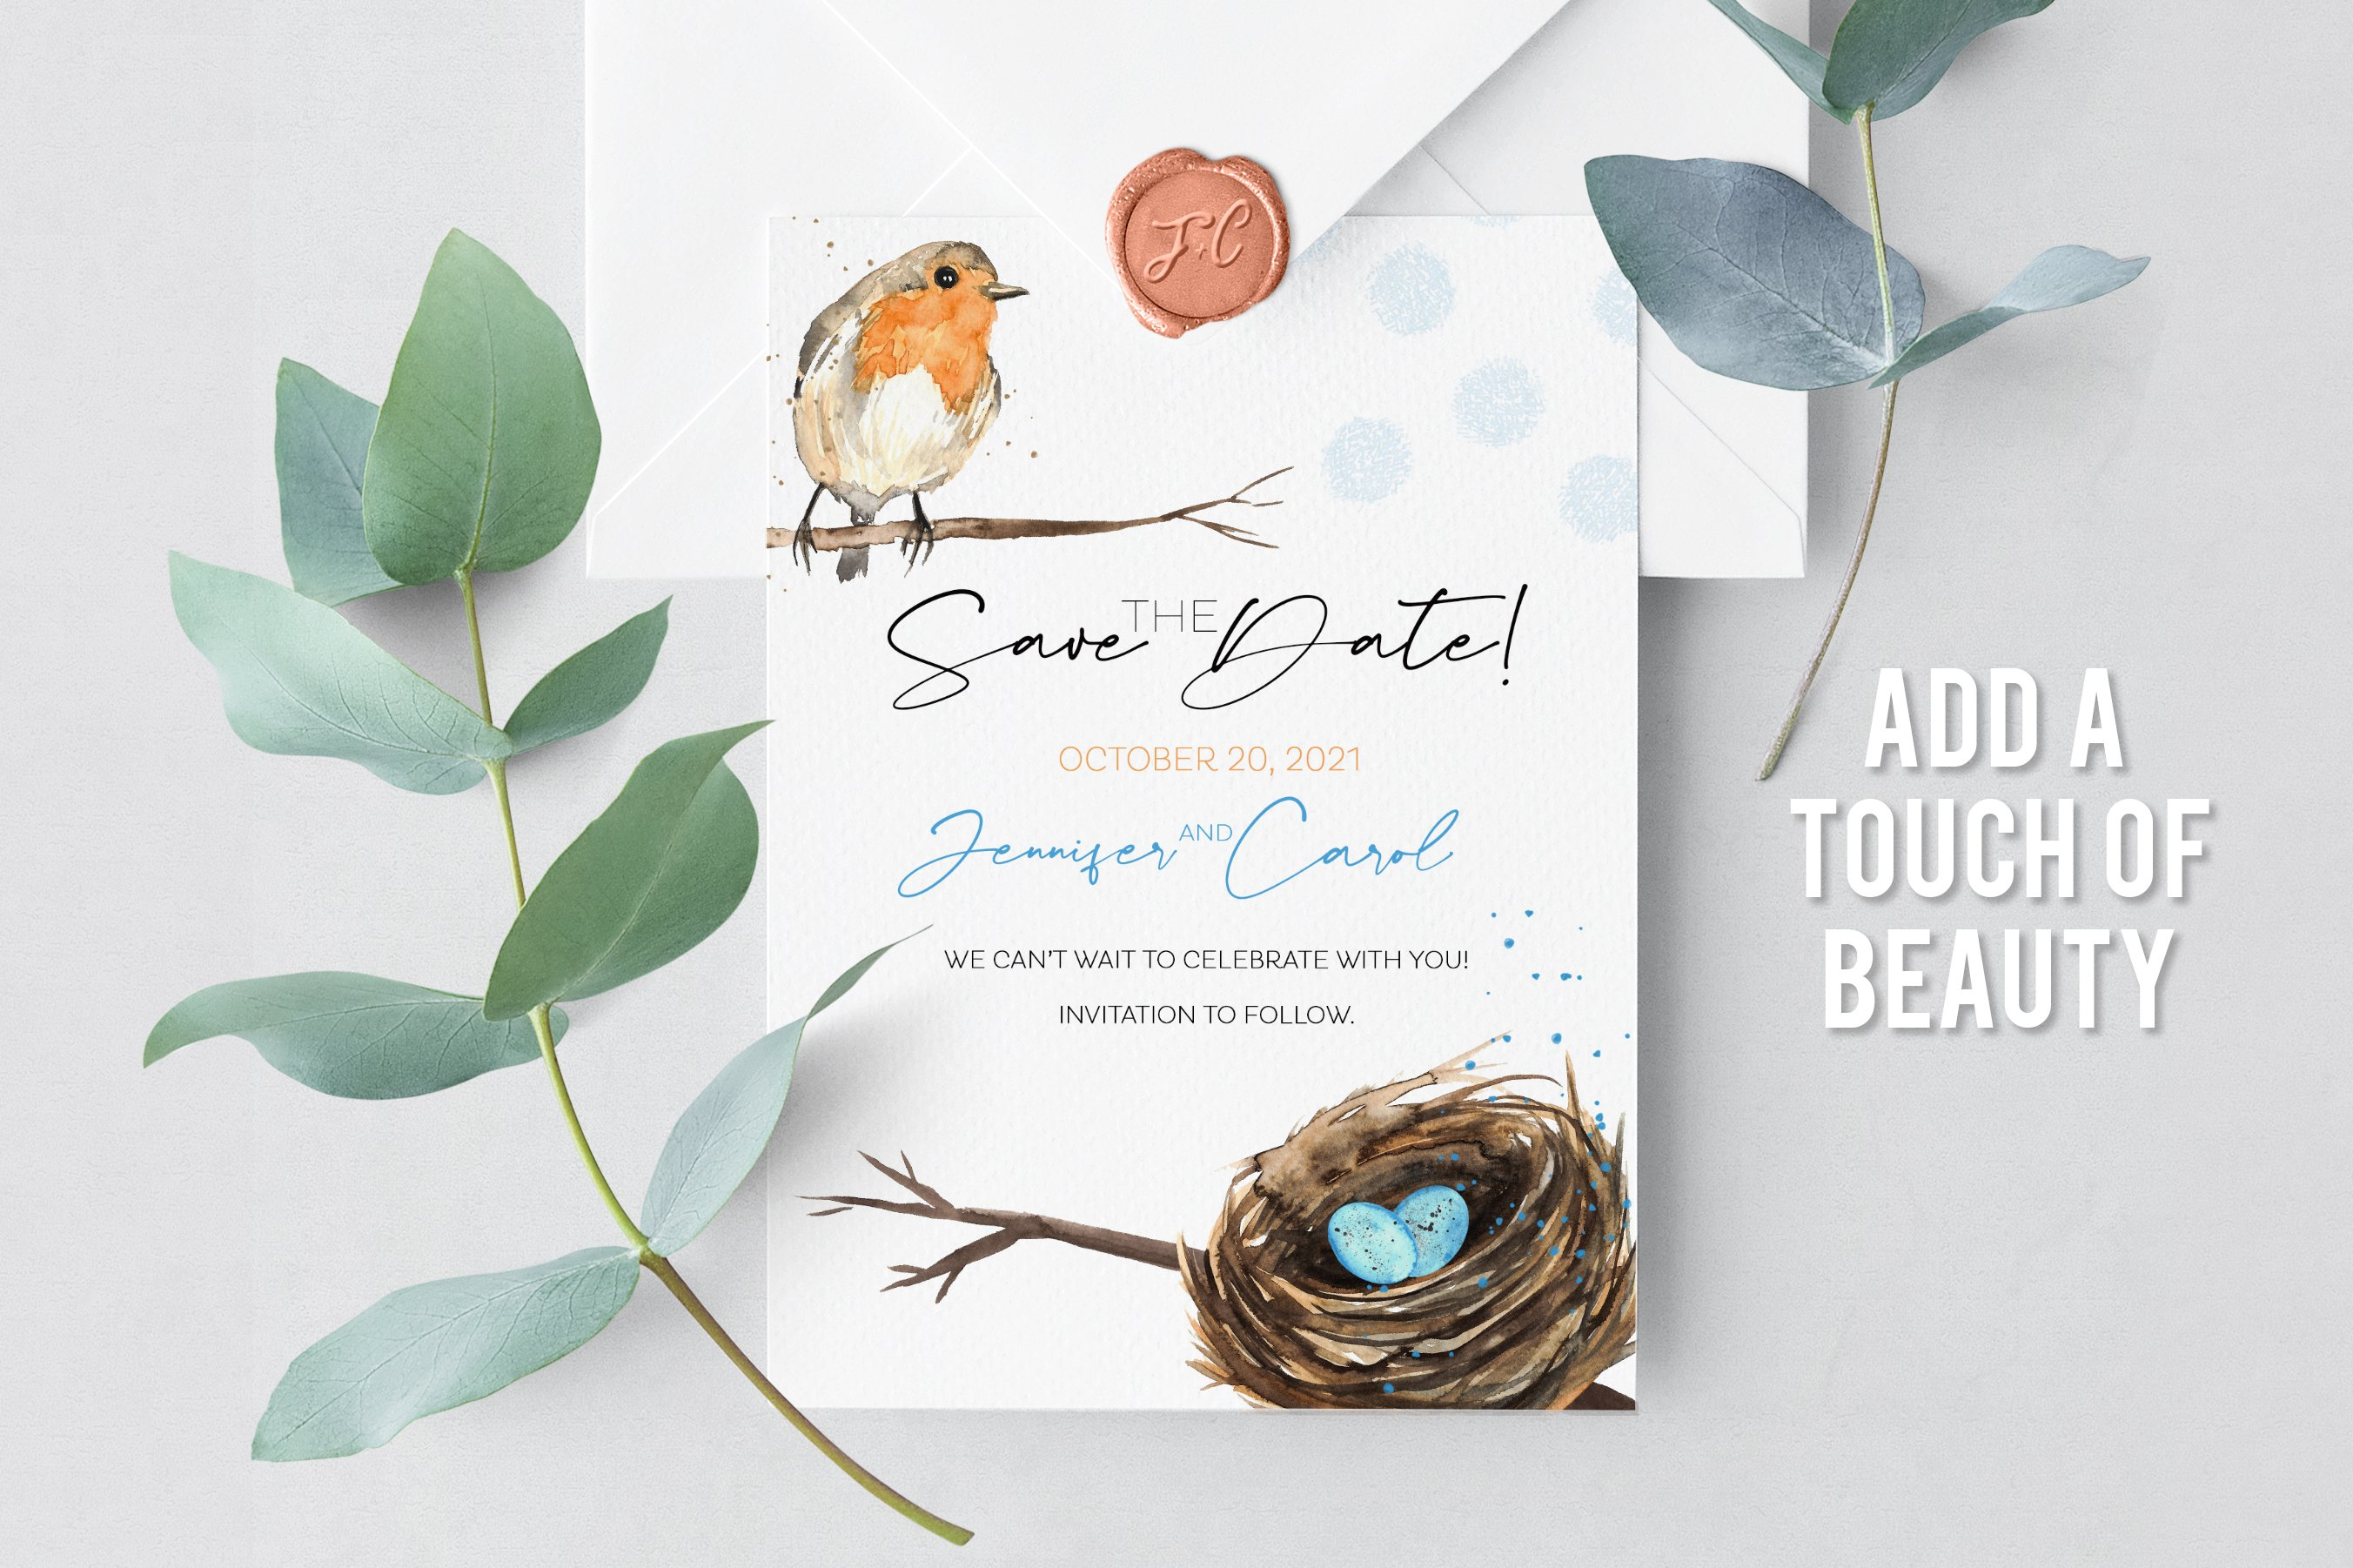 Birds Nest and Eggs Watercolor Clip Art Illustrations example image 2